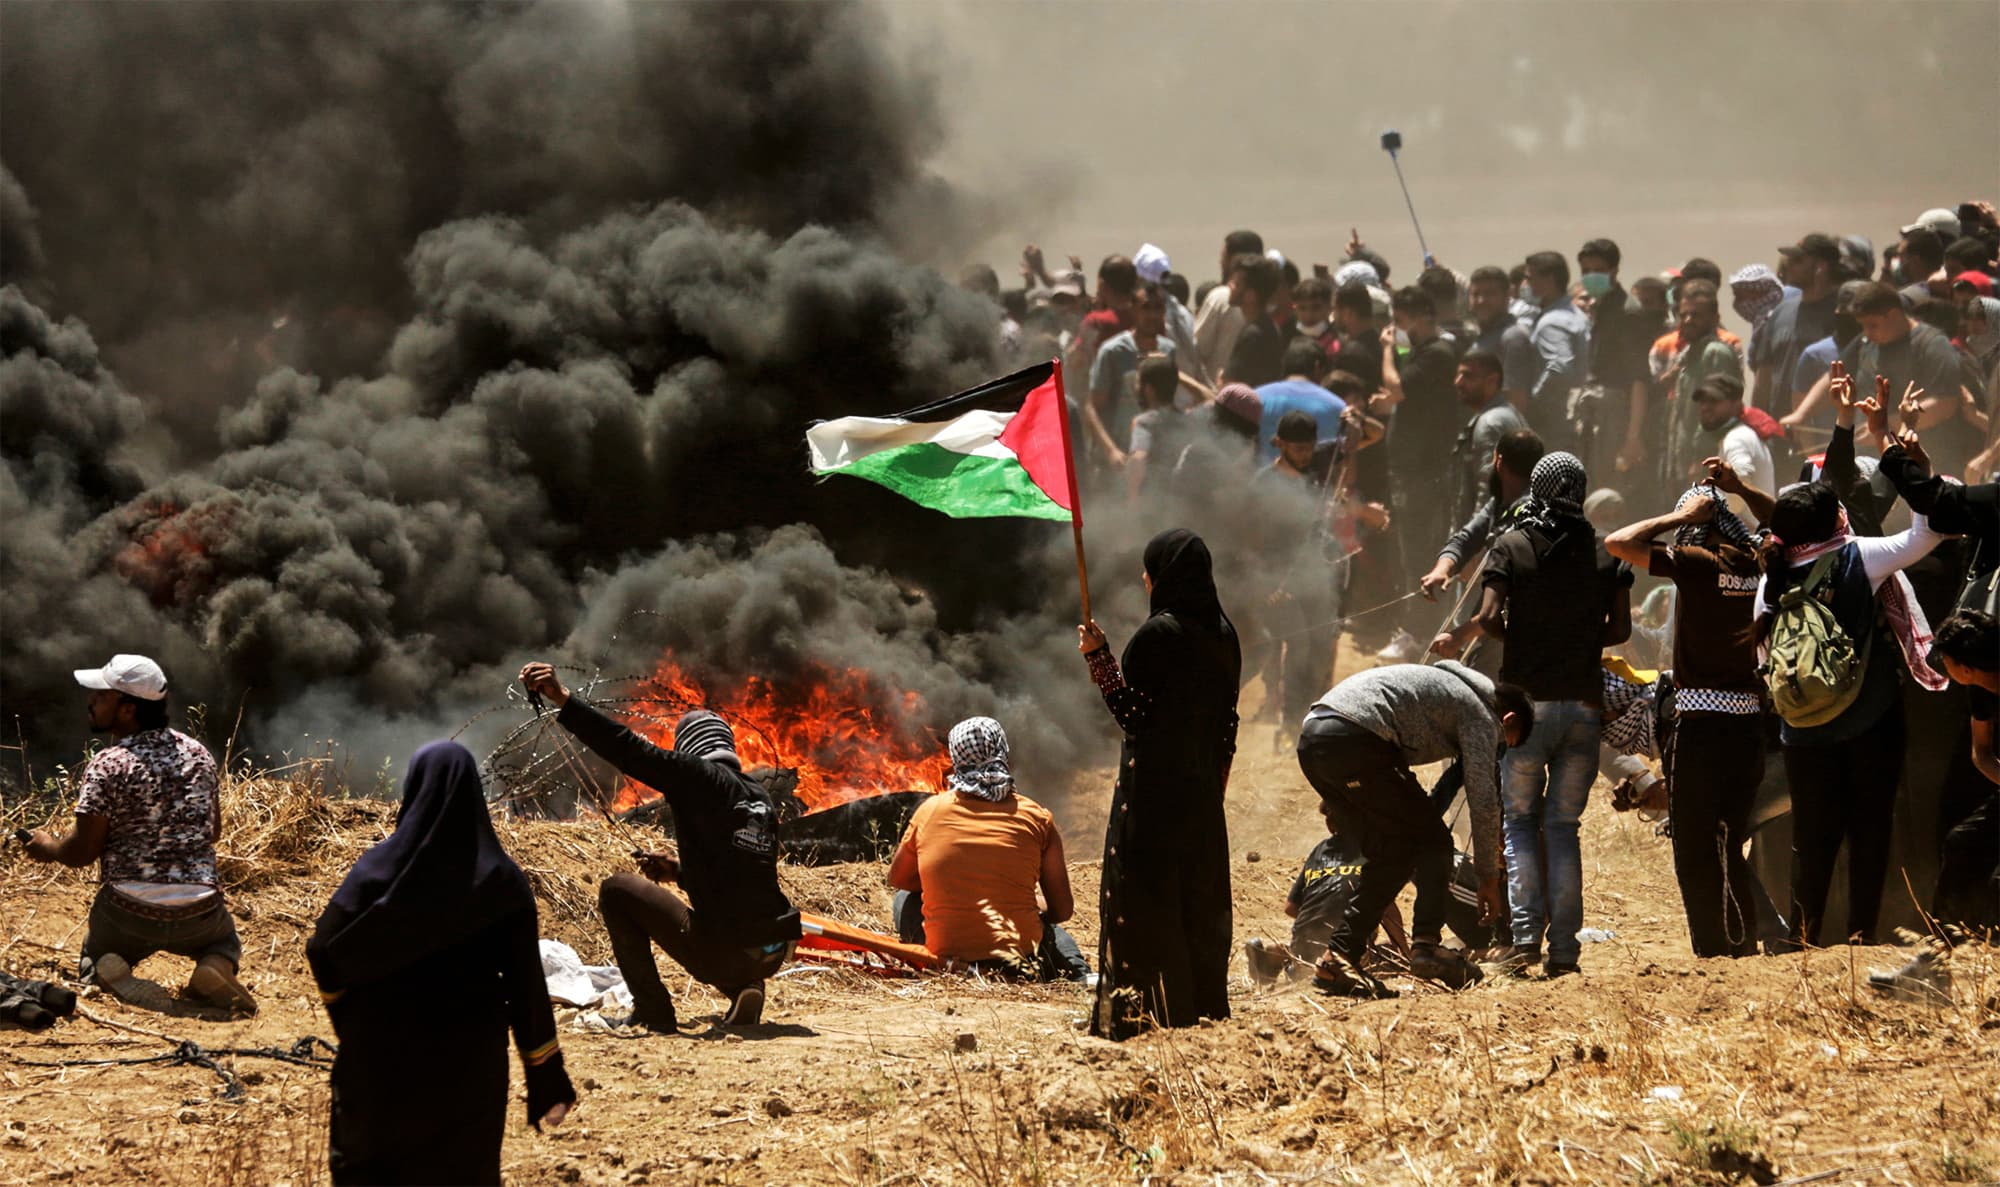 A Palestinian woman holding her national flag looks at clashes with Israeli forces near the border between the Gaza strip and Israel on May 14, 2018. — AFP